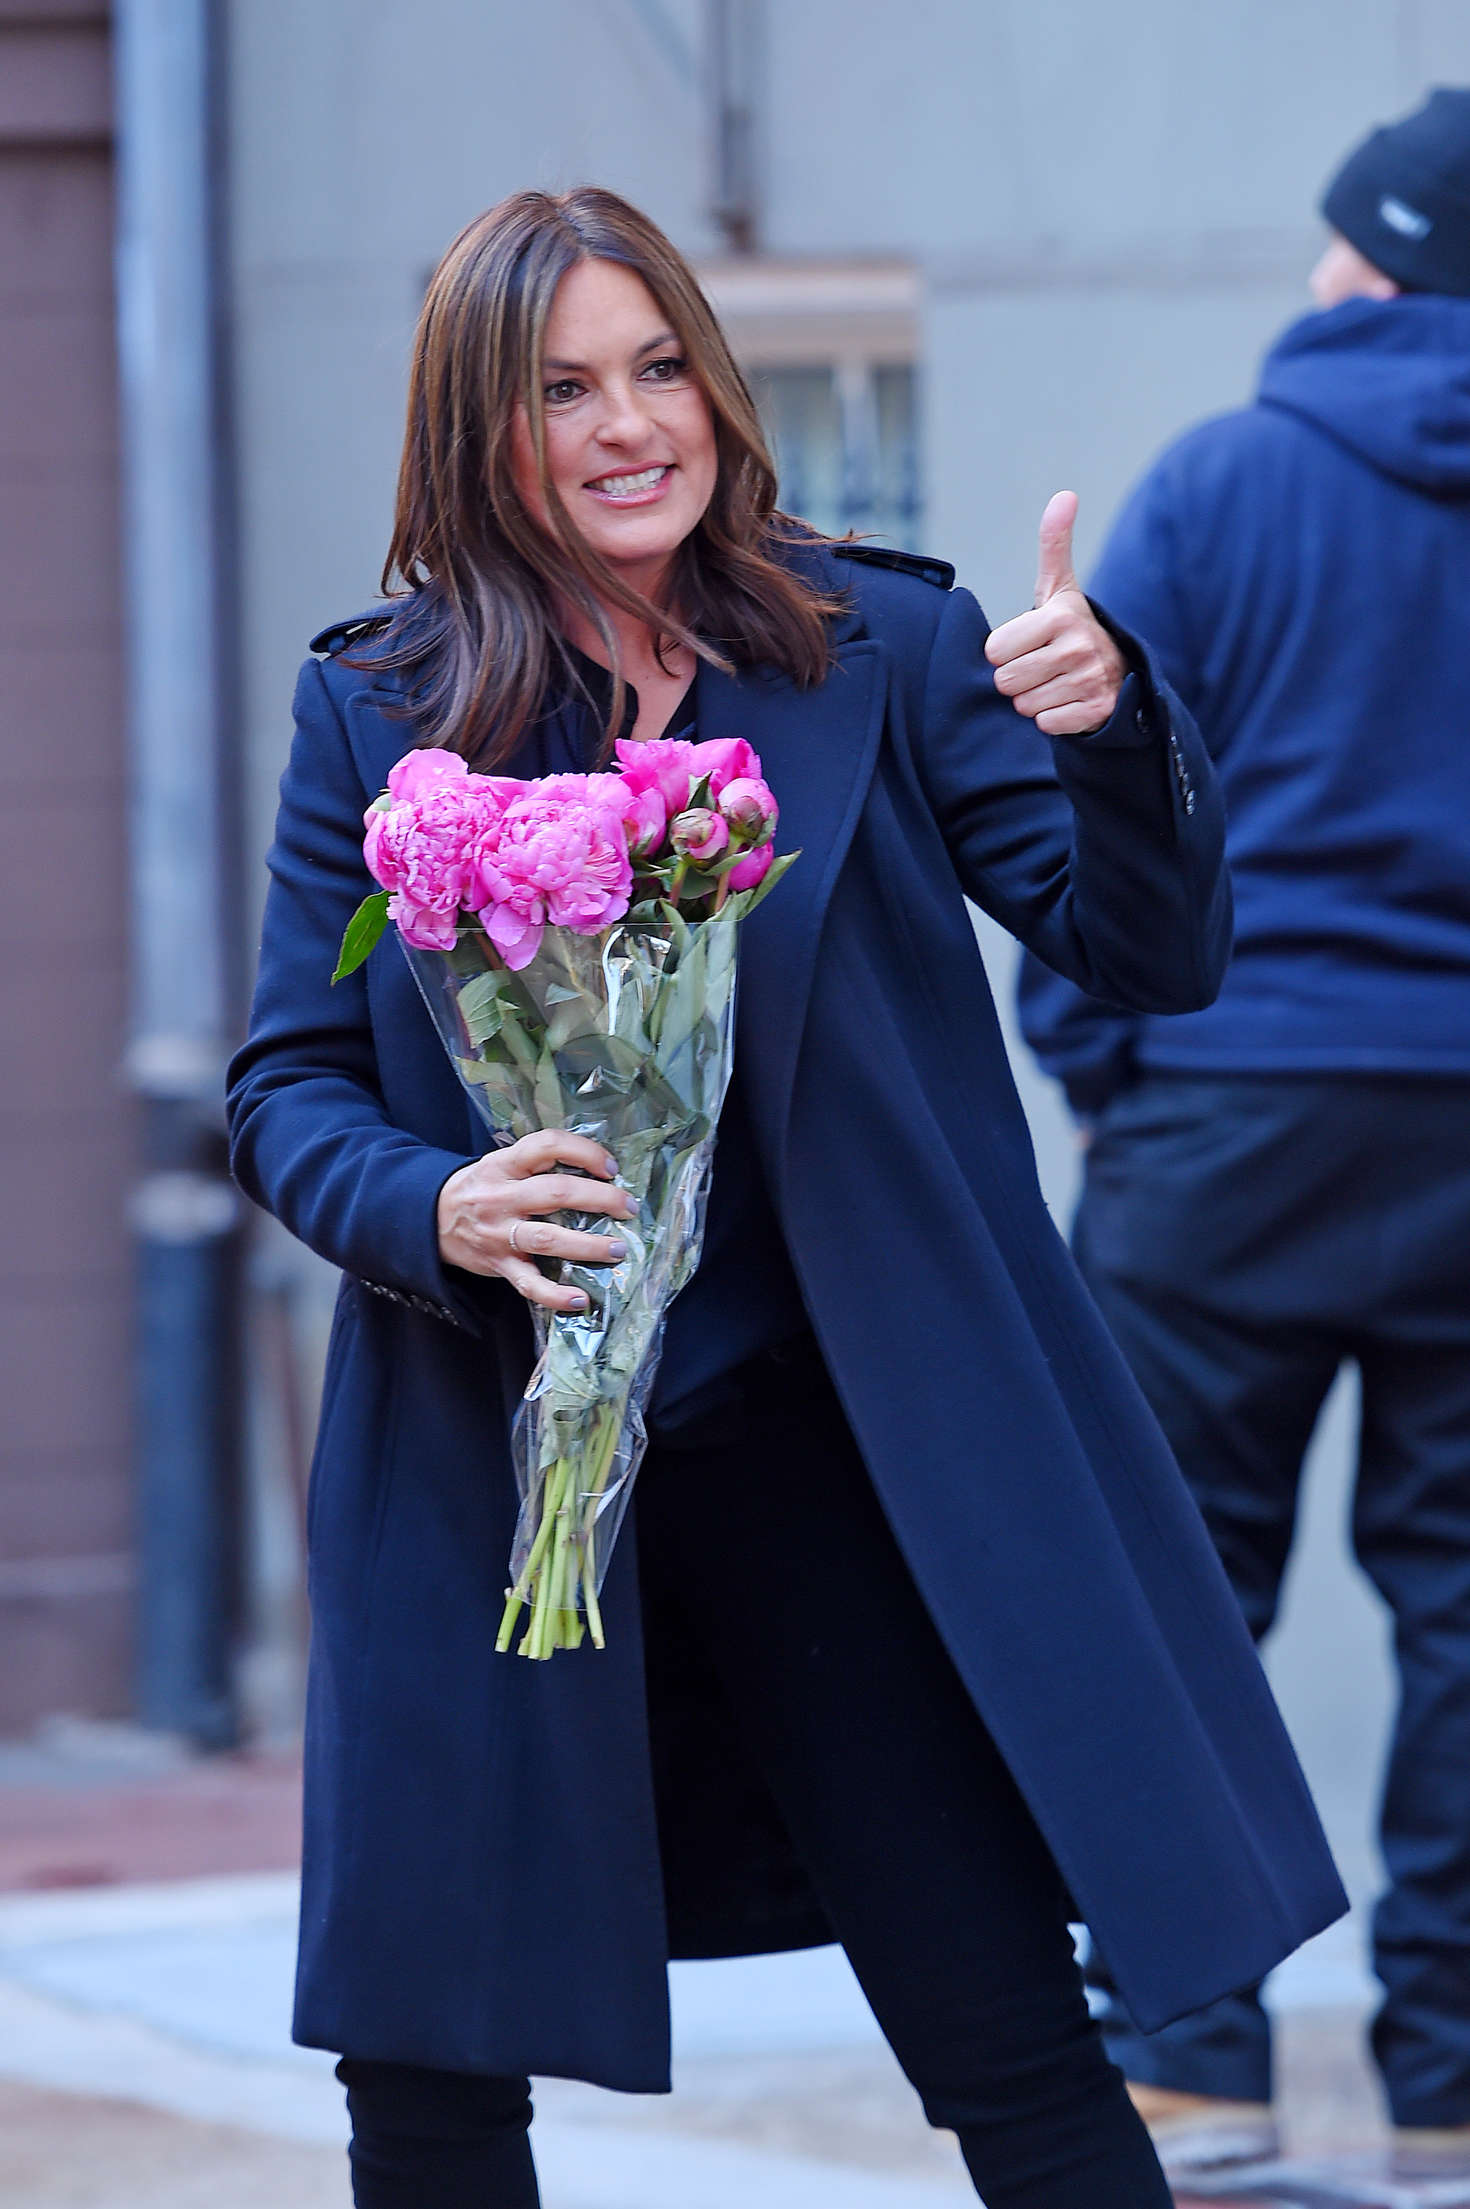 Mariska Hargitayon the set of 'Law & Order: SVU' in NYC